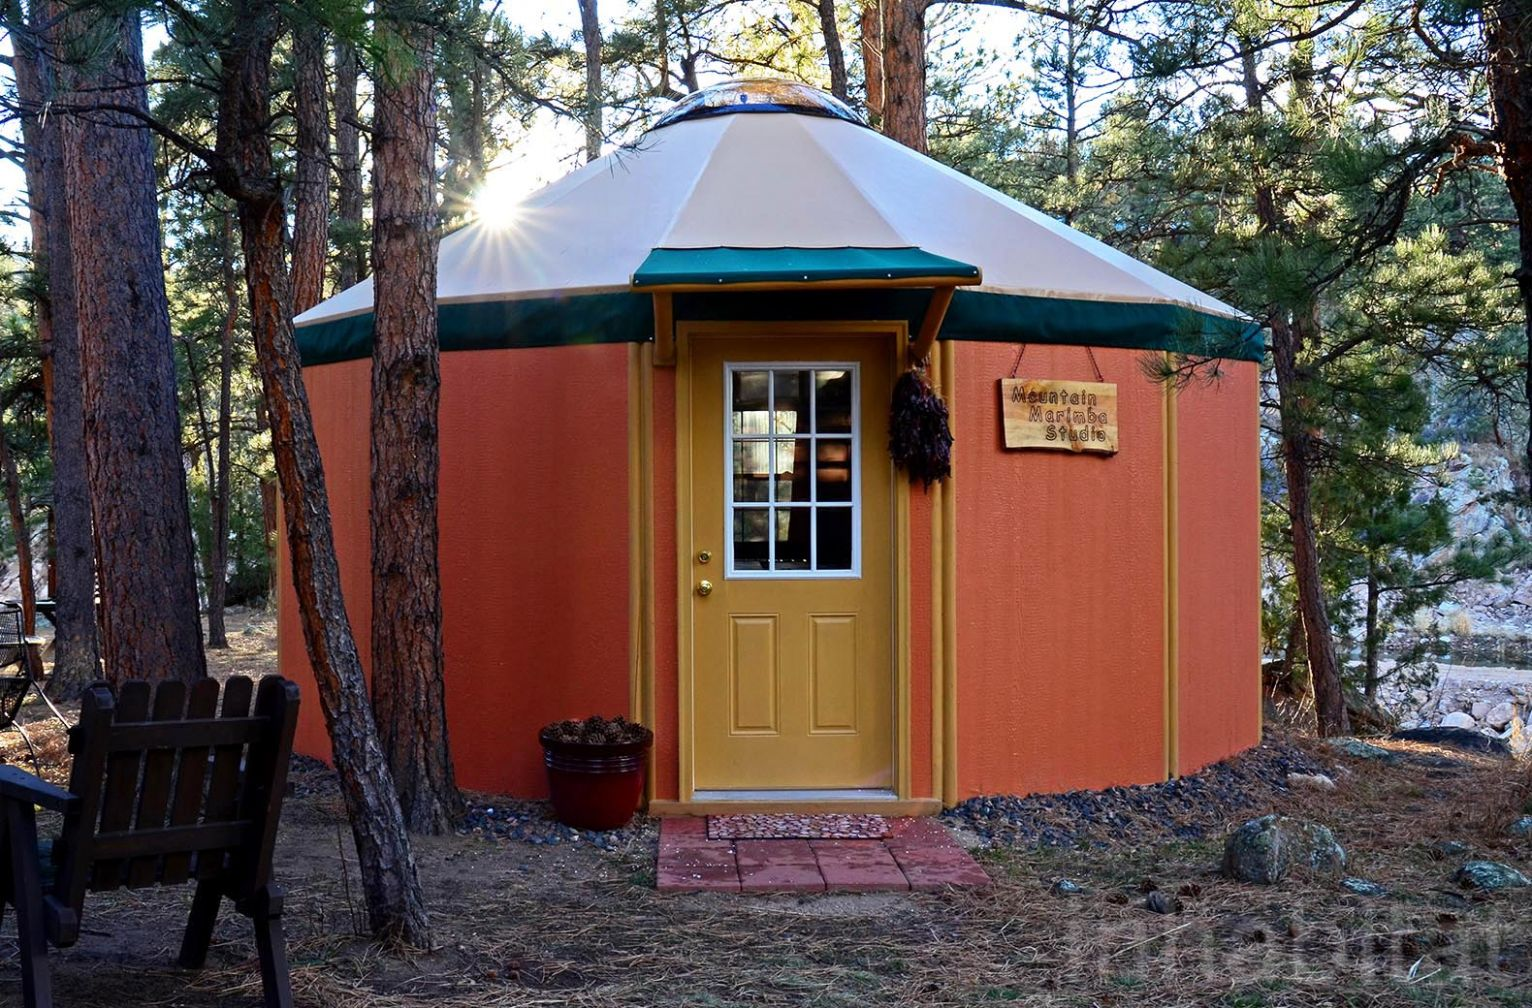 Freedom yurt cabins: a tiny home for people who love round houses